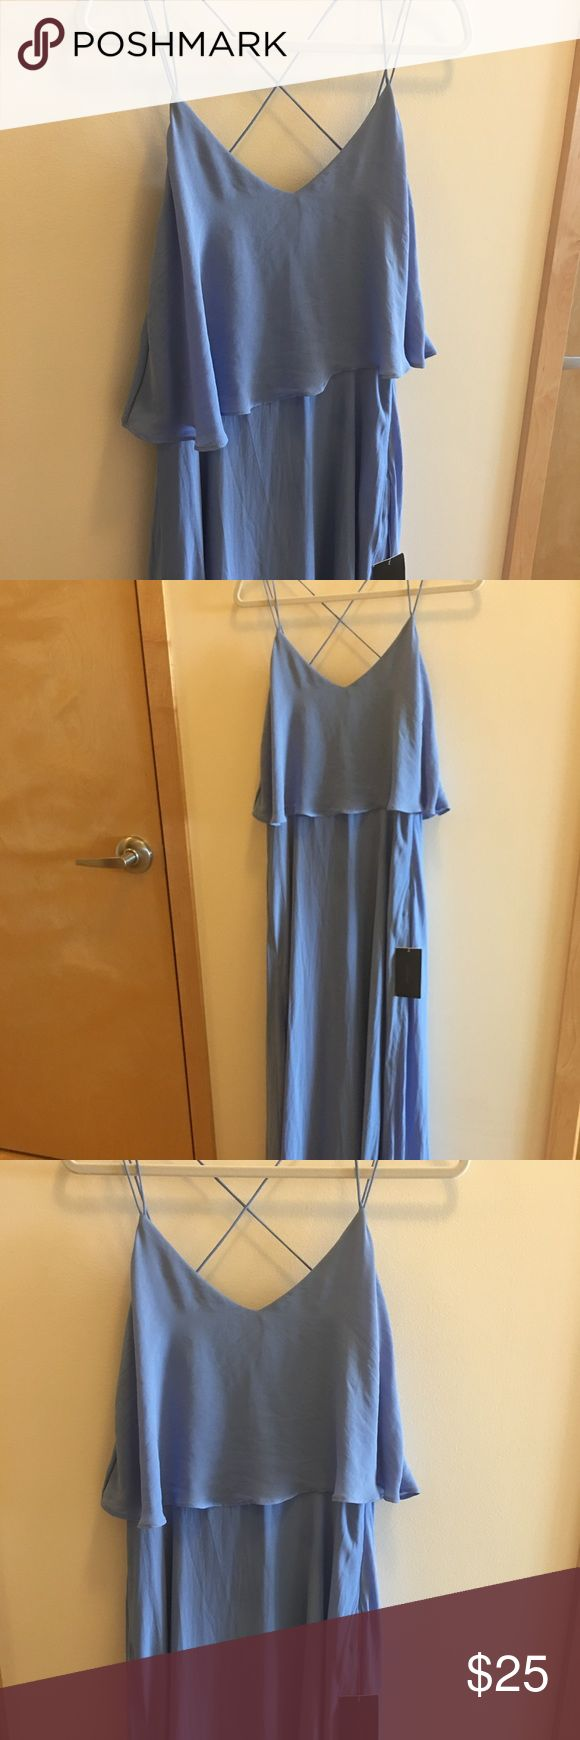 Zara Long Dress Light Blue Sz M UK Zara long Dress - Flutter Top with crisscross straps - Sz Medium UK - Zara UK sizing included. Please ask any questions before purchasing. All sales final. Zara Dresses